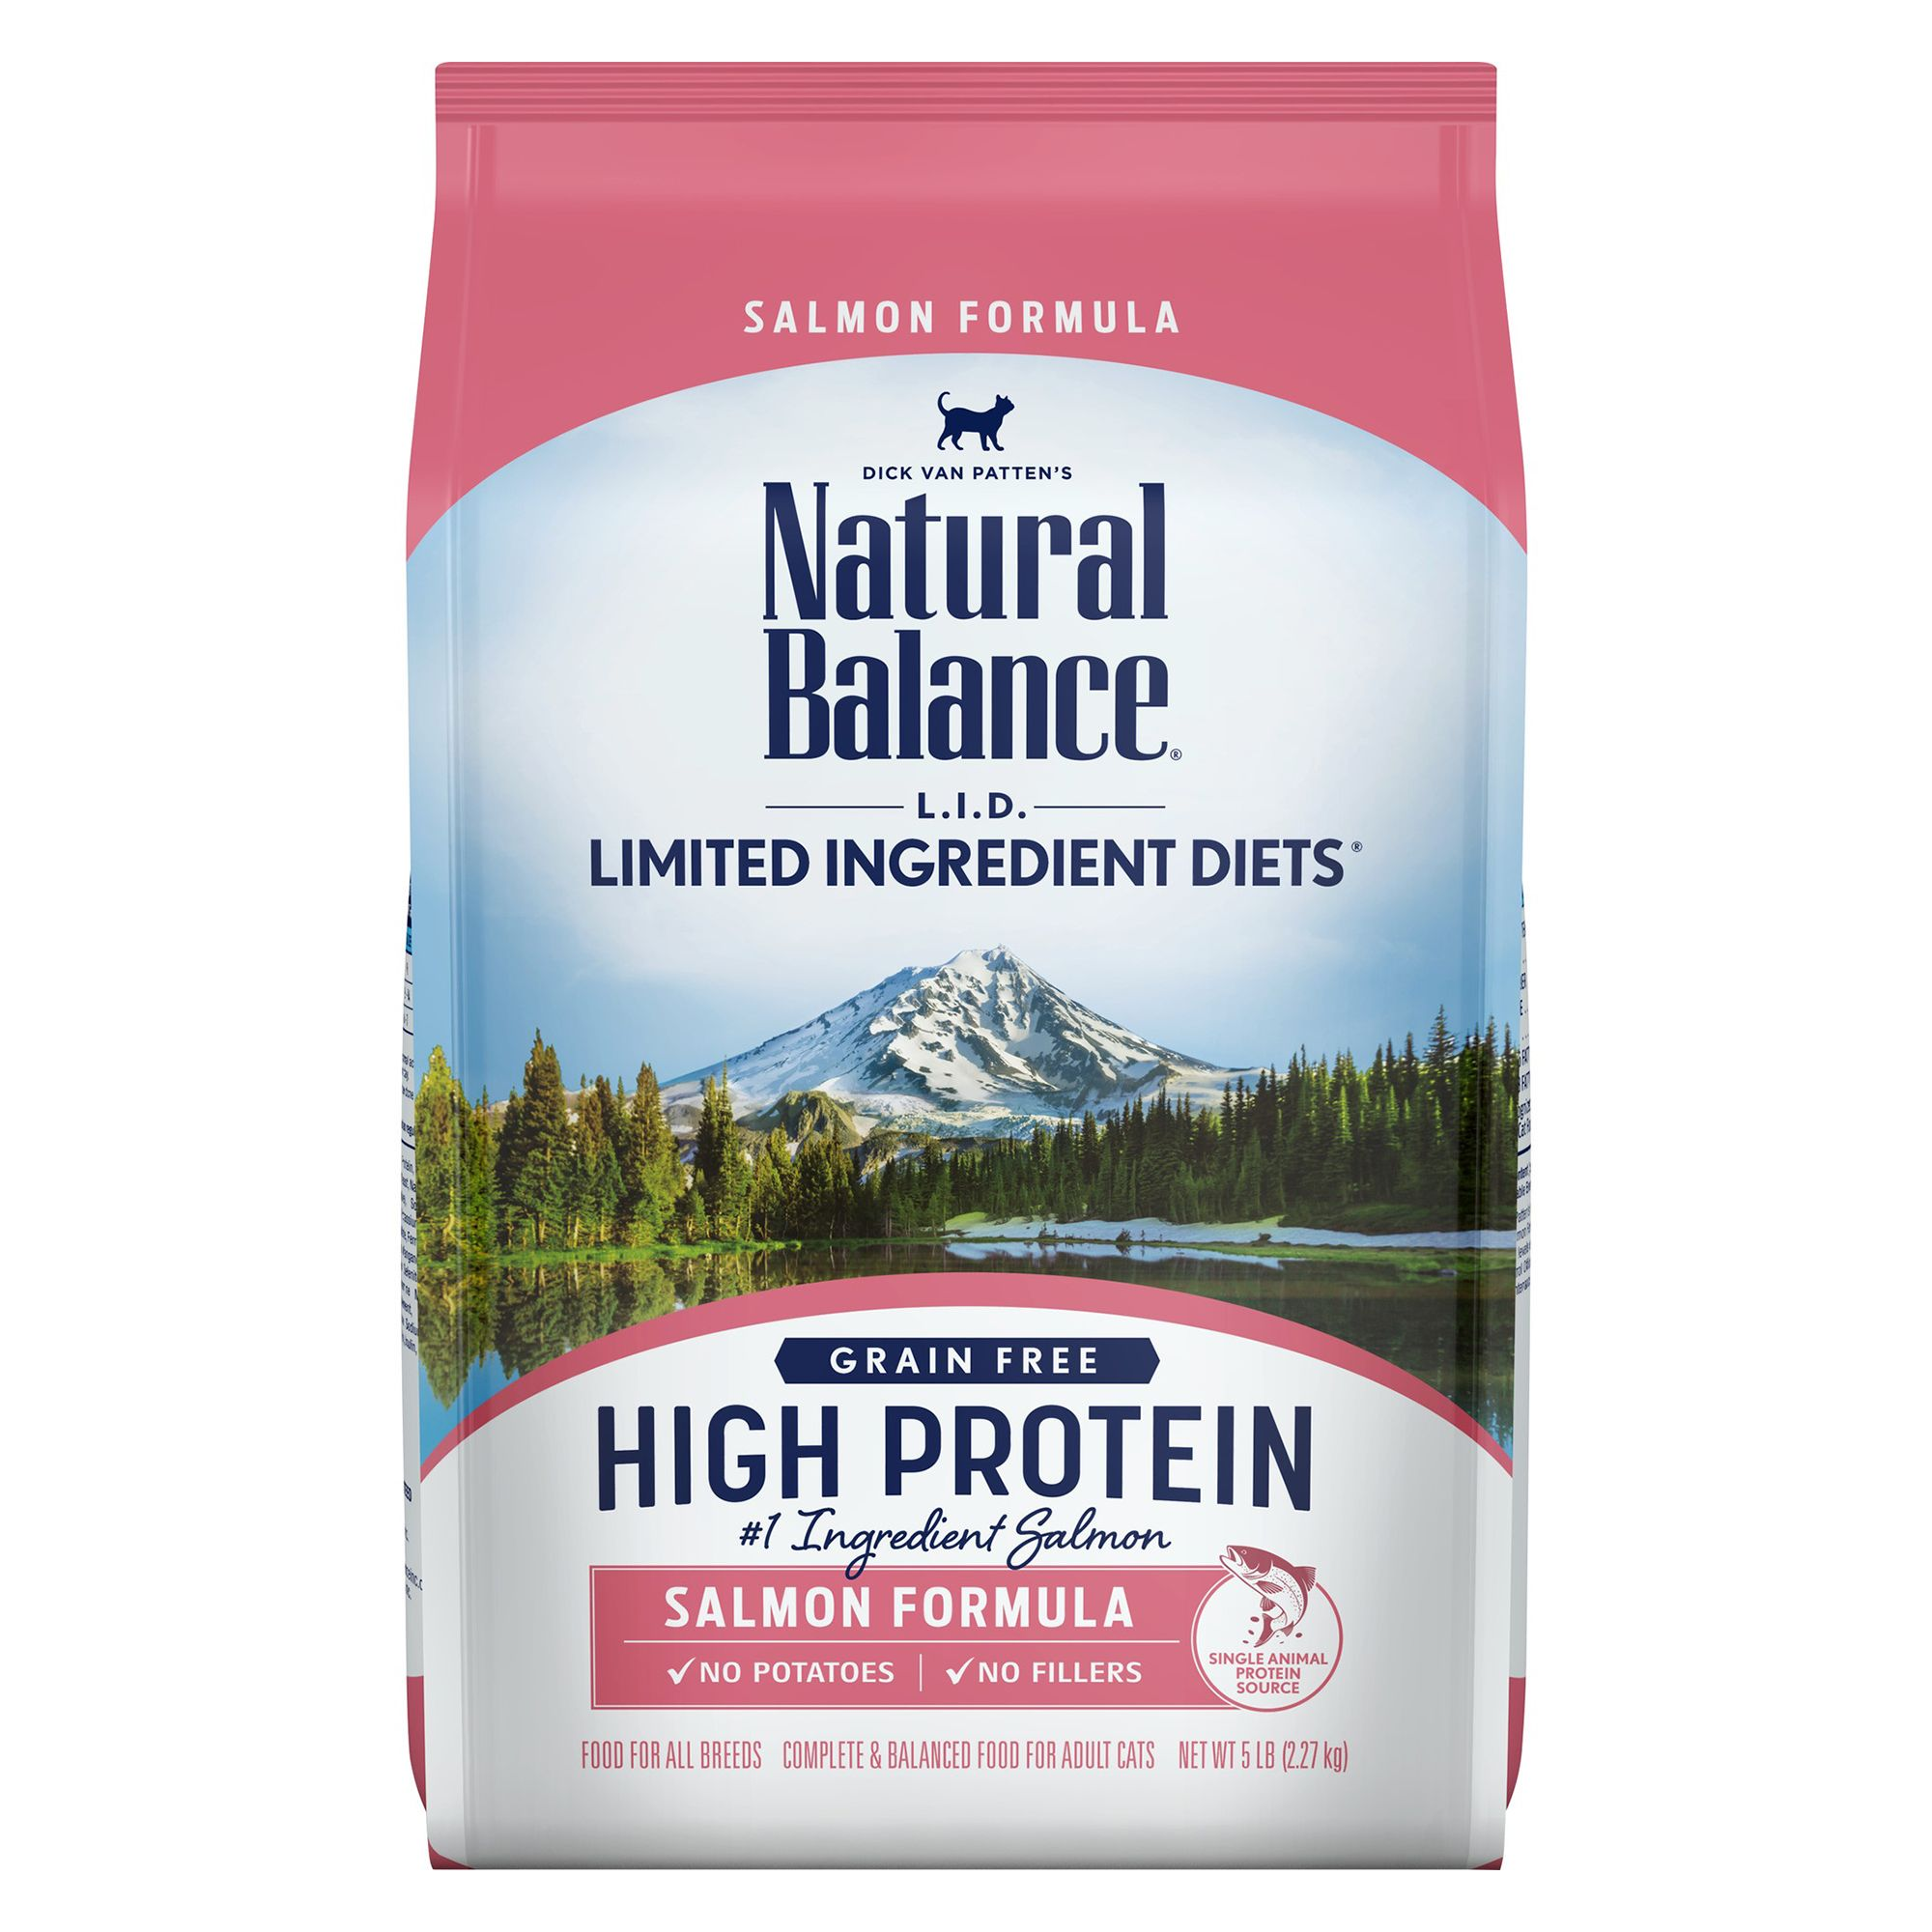 Natural Balance Limited Ingredient Diets Cat Food - Grain Free, High Protein, Salmon 5lb